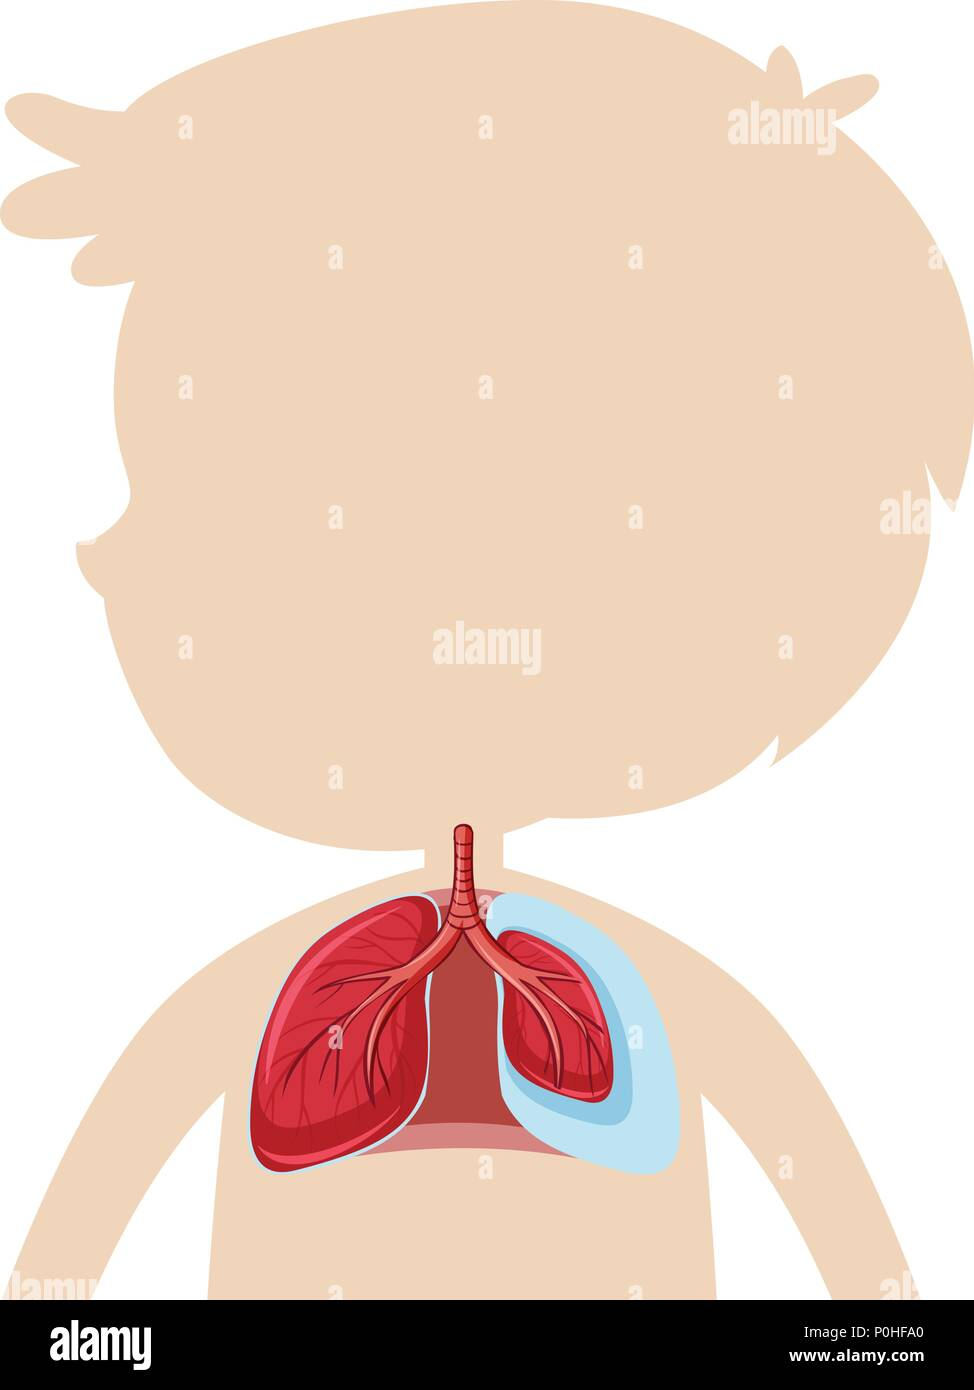 An Anatomy of Human Lung illustration - Stock Image